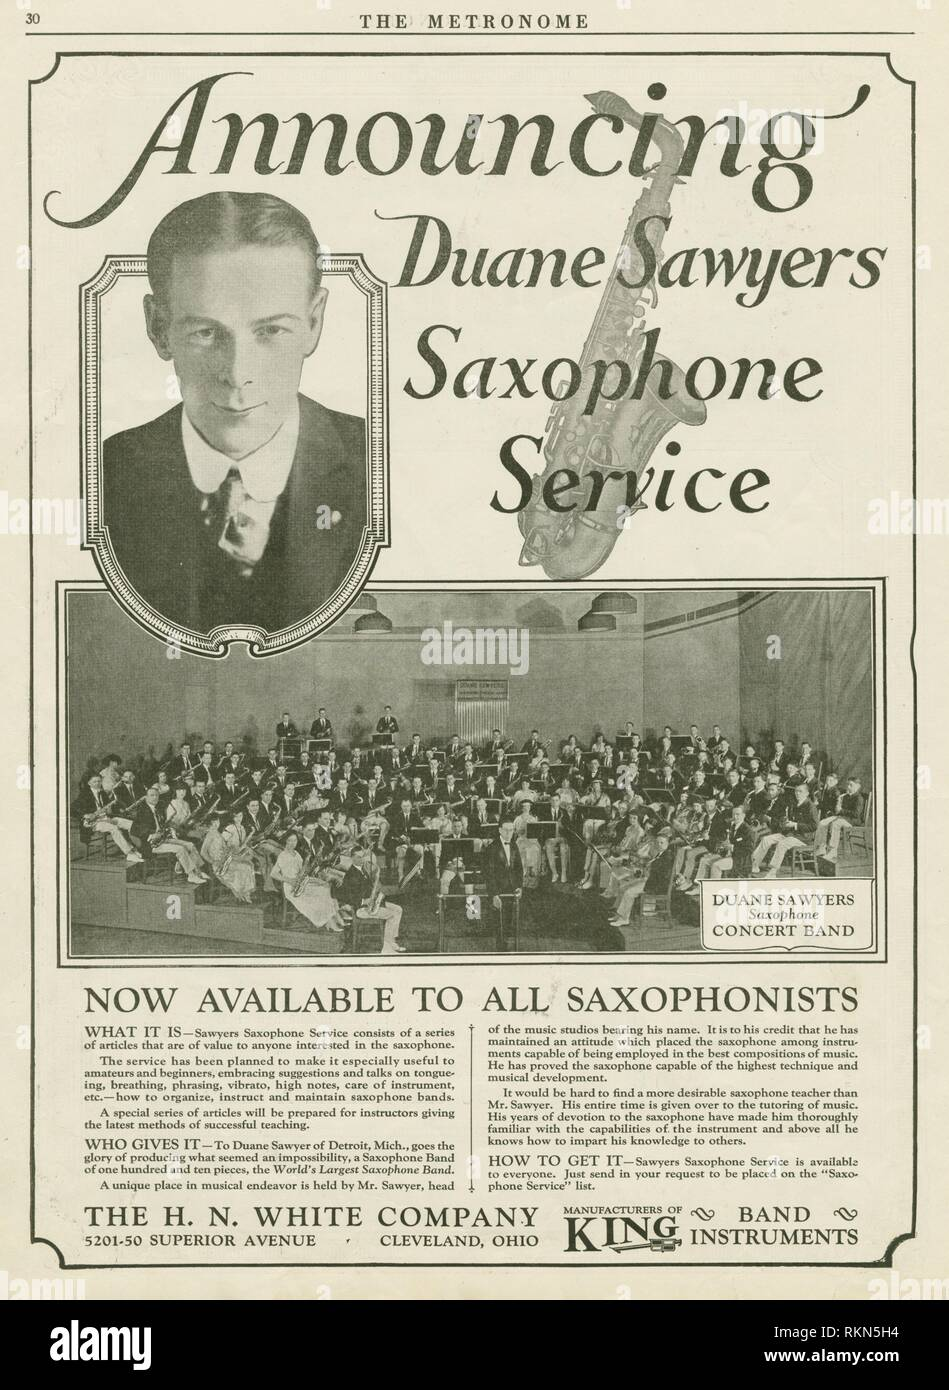 Announcing Duane Sawyers Saxophone Service. The Metronome The metronome, Vol. 40, 1924. Date Issued: 1924-04. Music Bands (Music) saxophones. - Stock Image